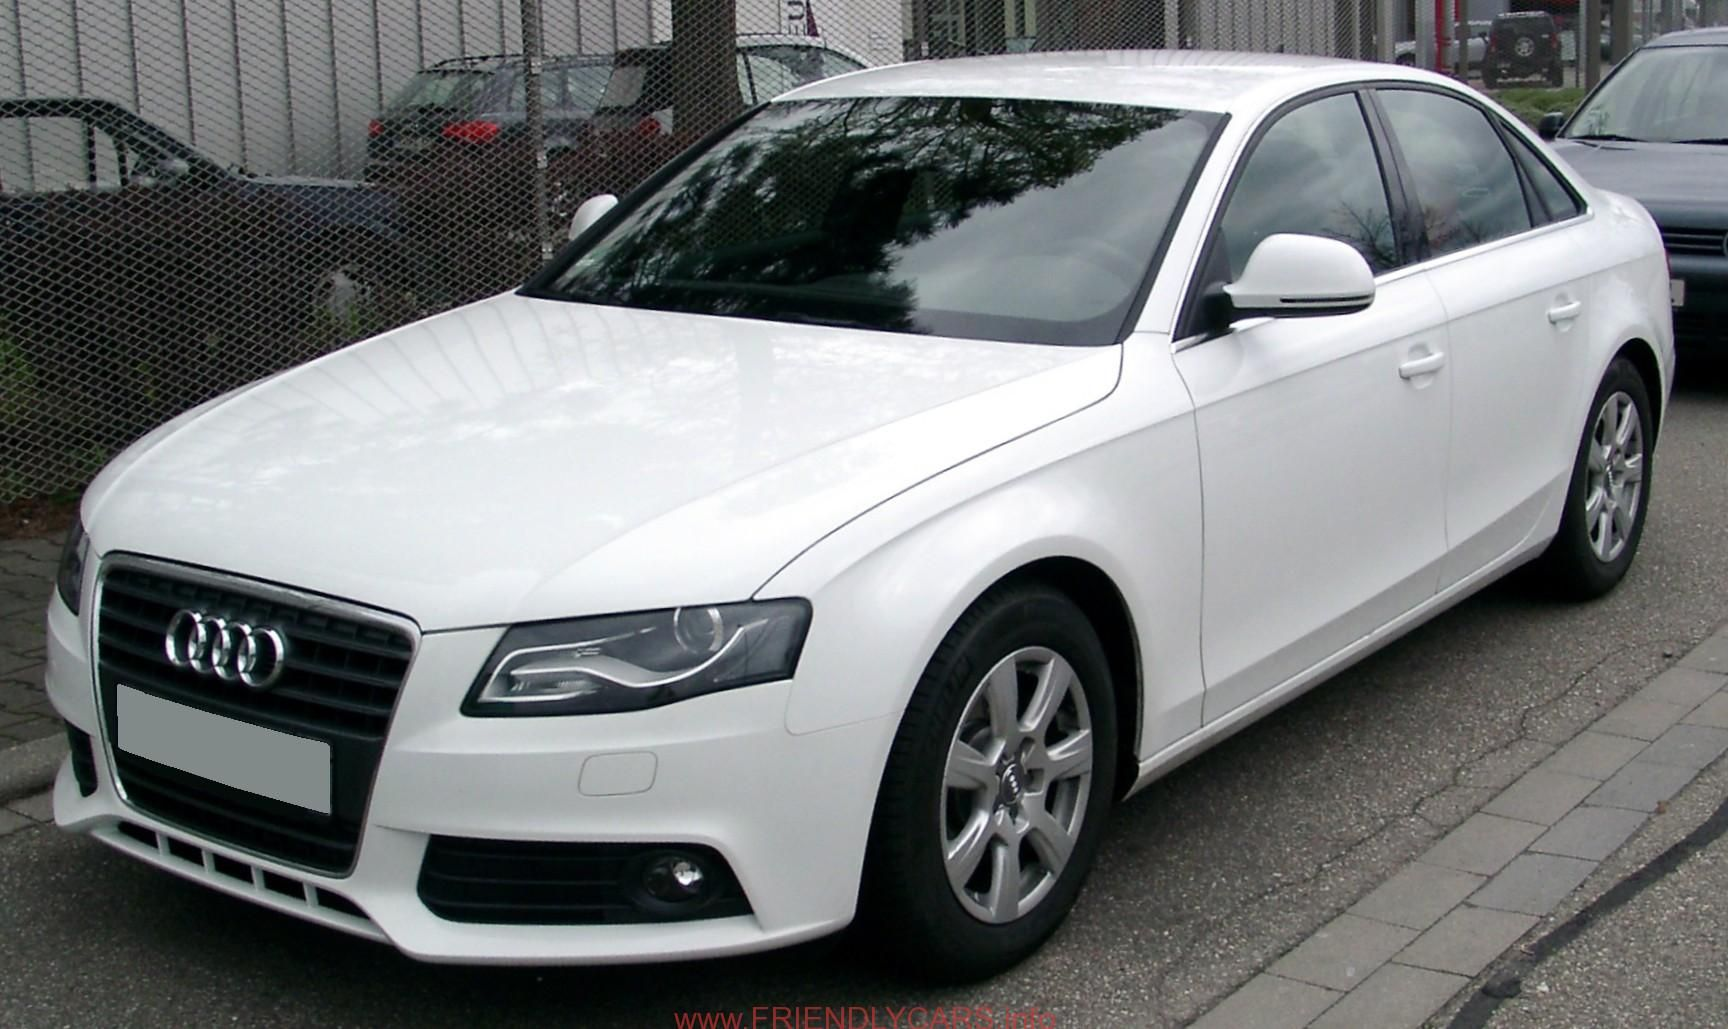 nice audi a4 2004 blacked out car images hd Audi A4 2004